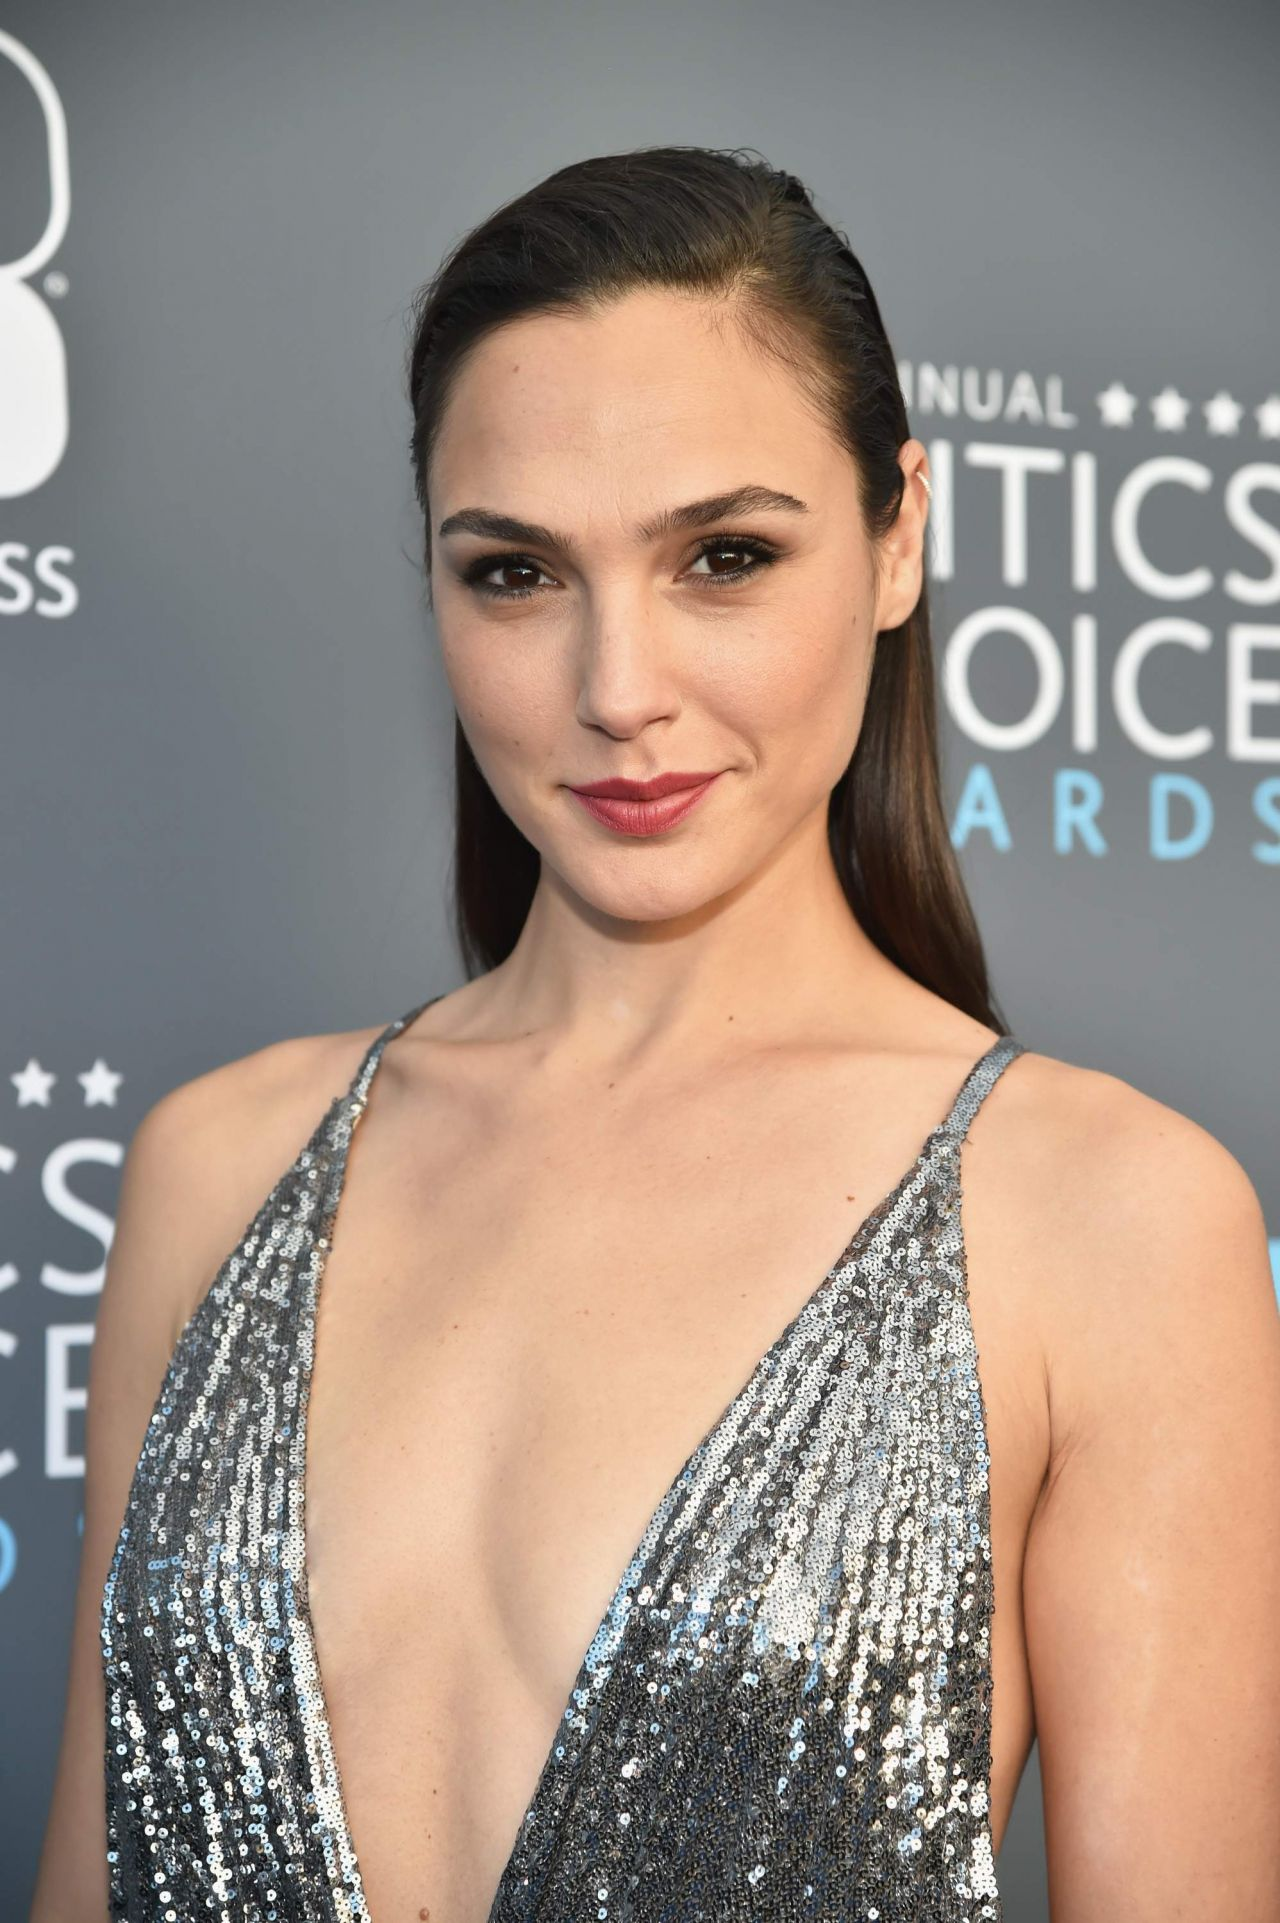 W472924 furthermore Sexy Wallpaper Gallery For Game Of Thrones Star Carice Van Houten further Good Morning America Anchors Thrilled To Wel e Michael Strahan W203388 moreover Franco citti additionally Oscars 2018 90th Academy Awards Elton Johns Party Jane Seymour Age Playboy Dress. on oscars 2017 red carpet live